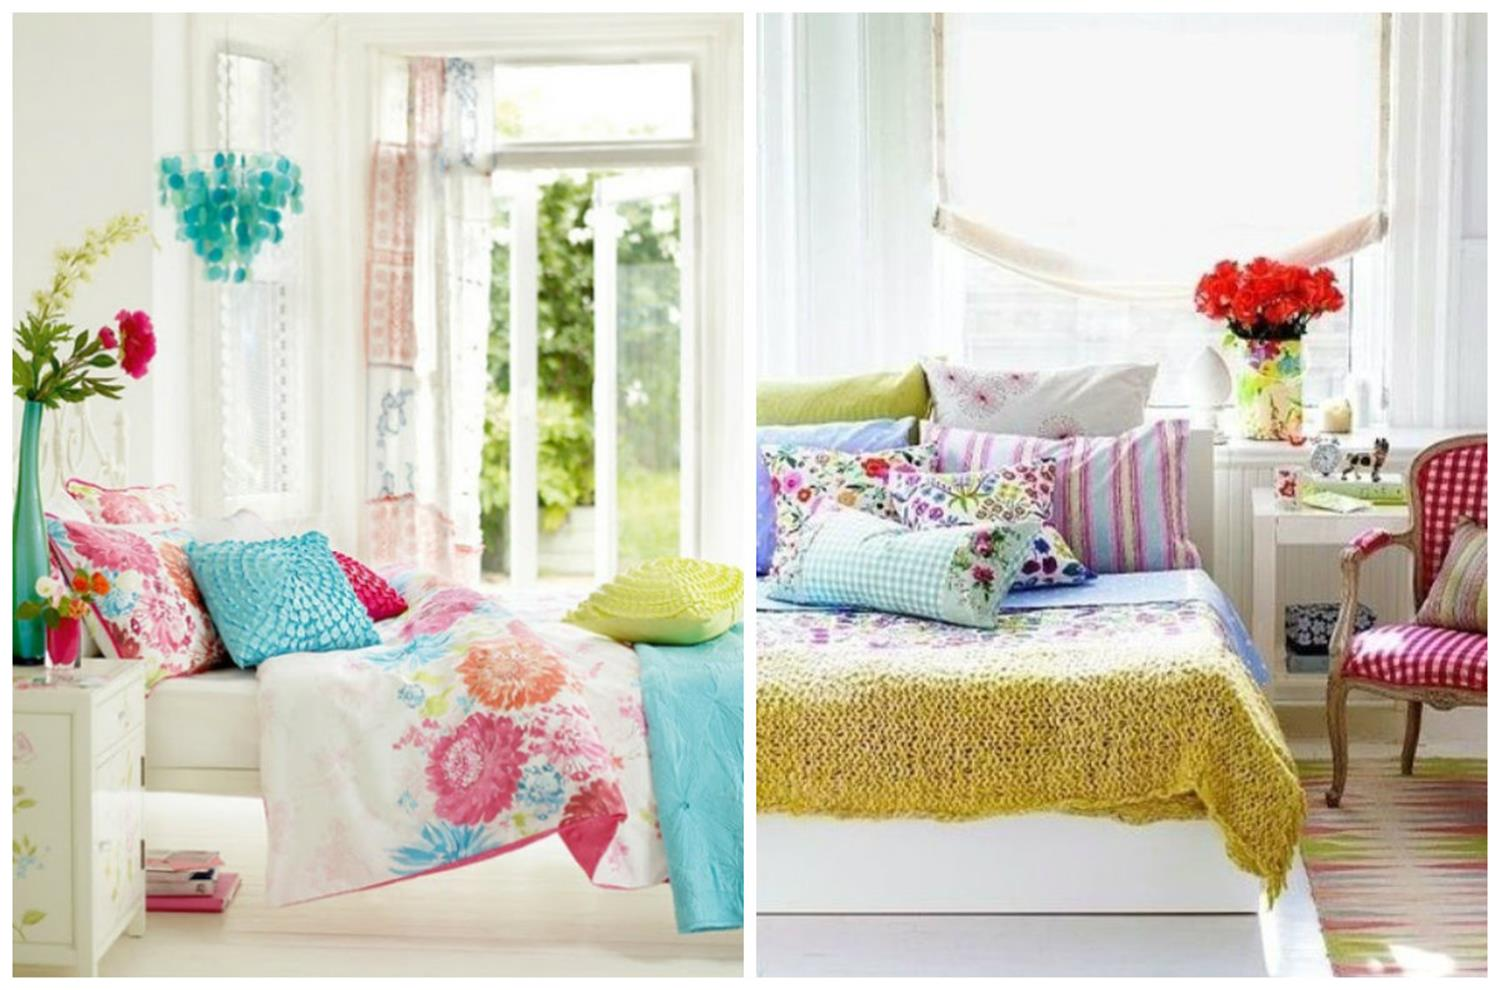 Bedroom Decorating Ideas for Spring 38